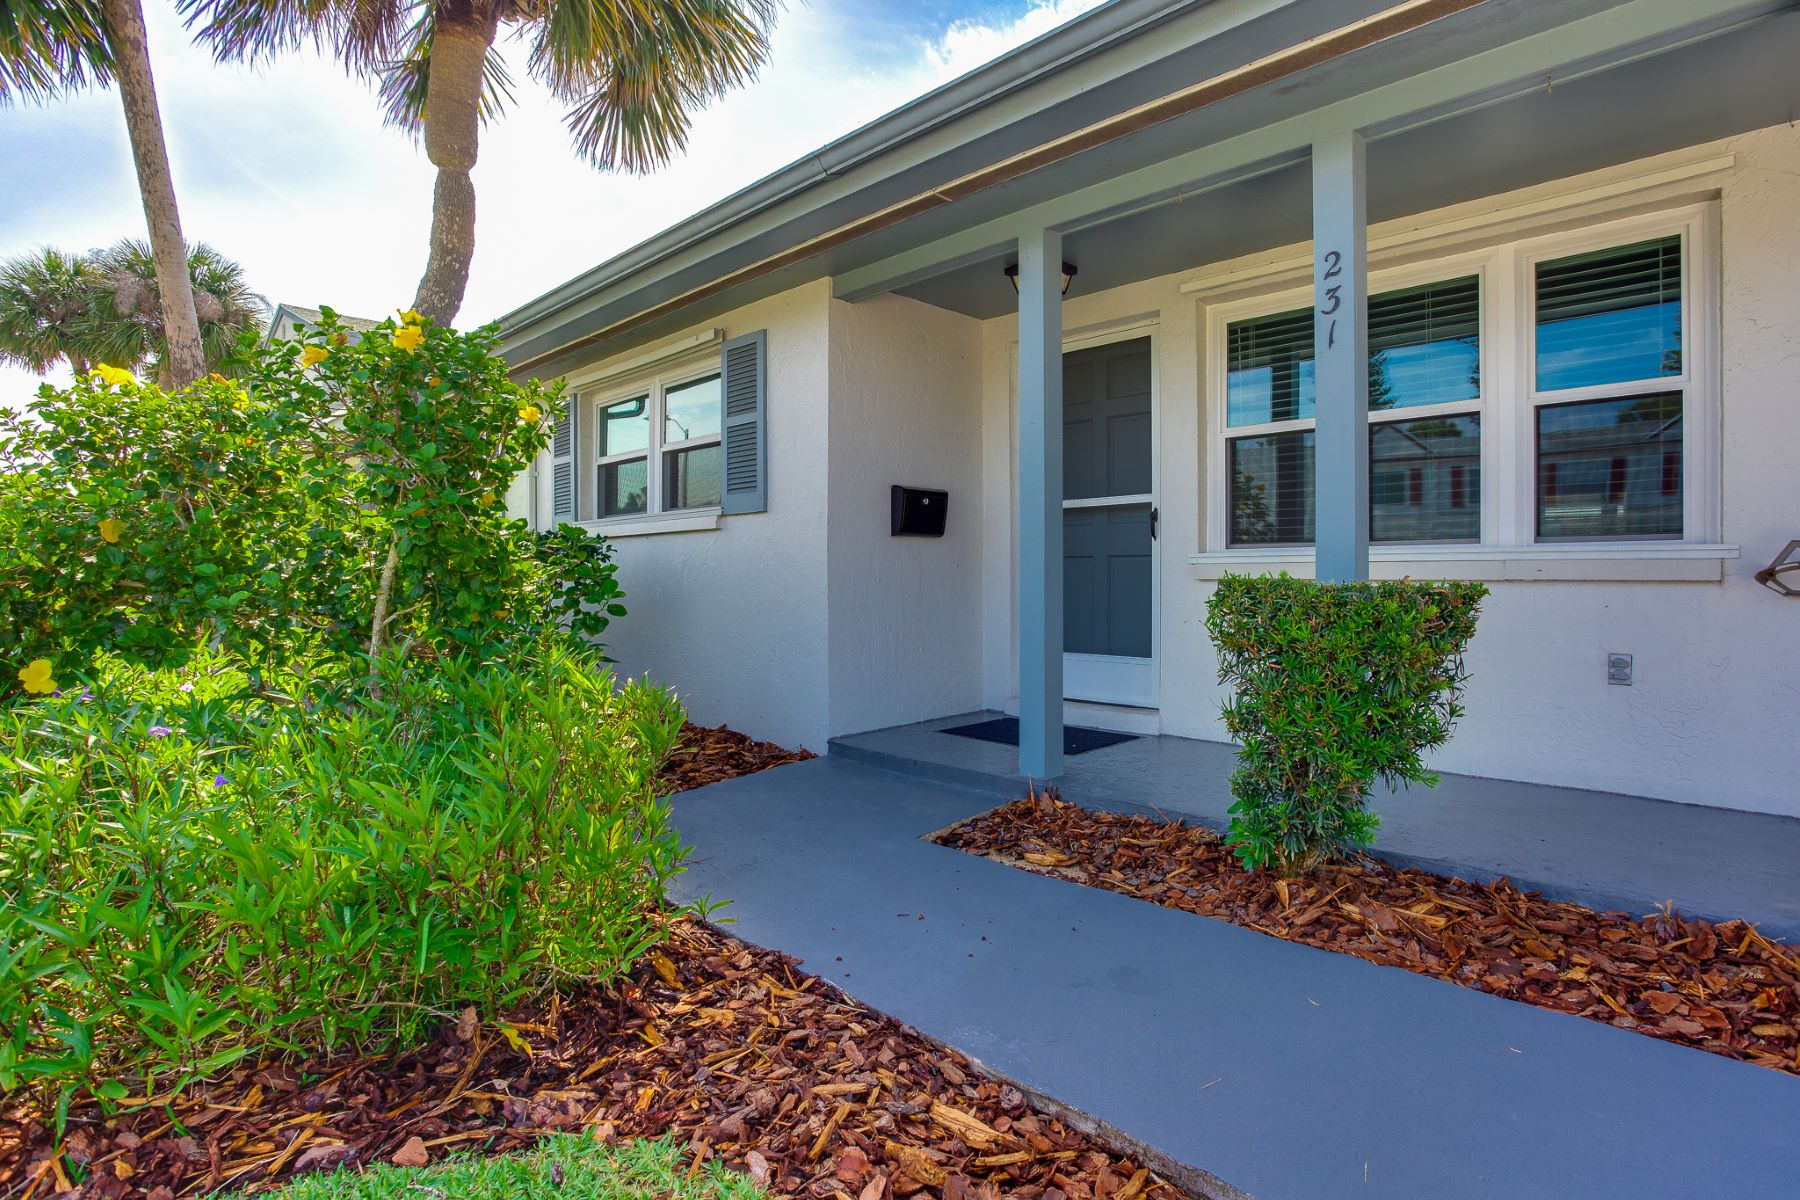 townhouses for Active at Town House Estates 231 Emerald Drive North Indian Harbour Beach, Florida 32937 United States